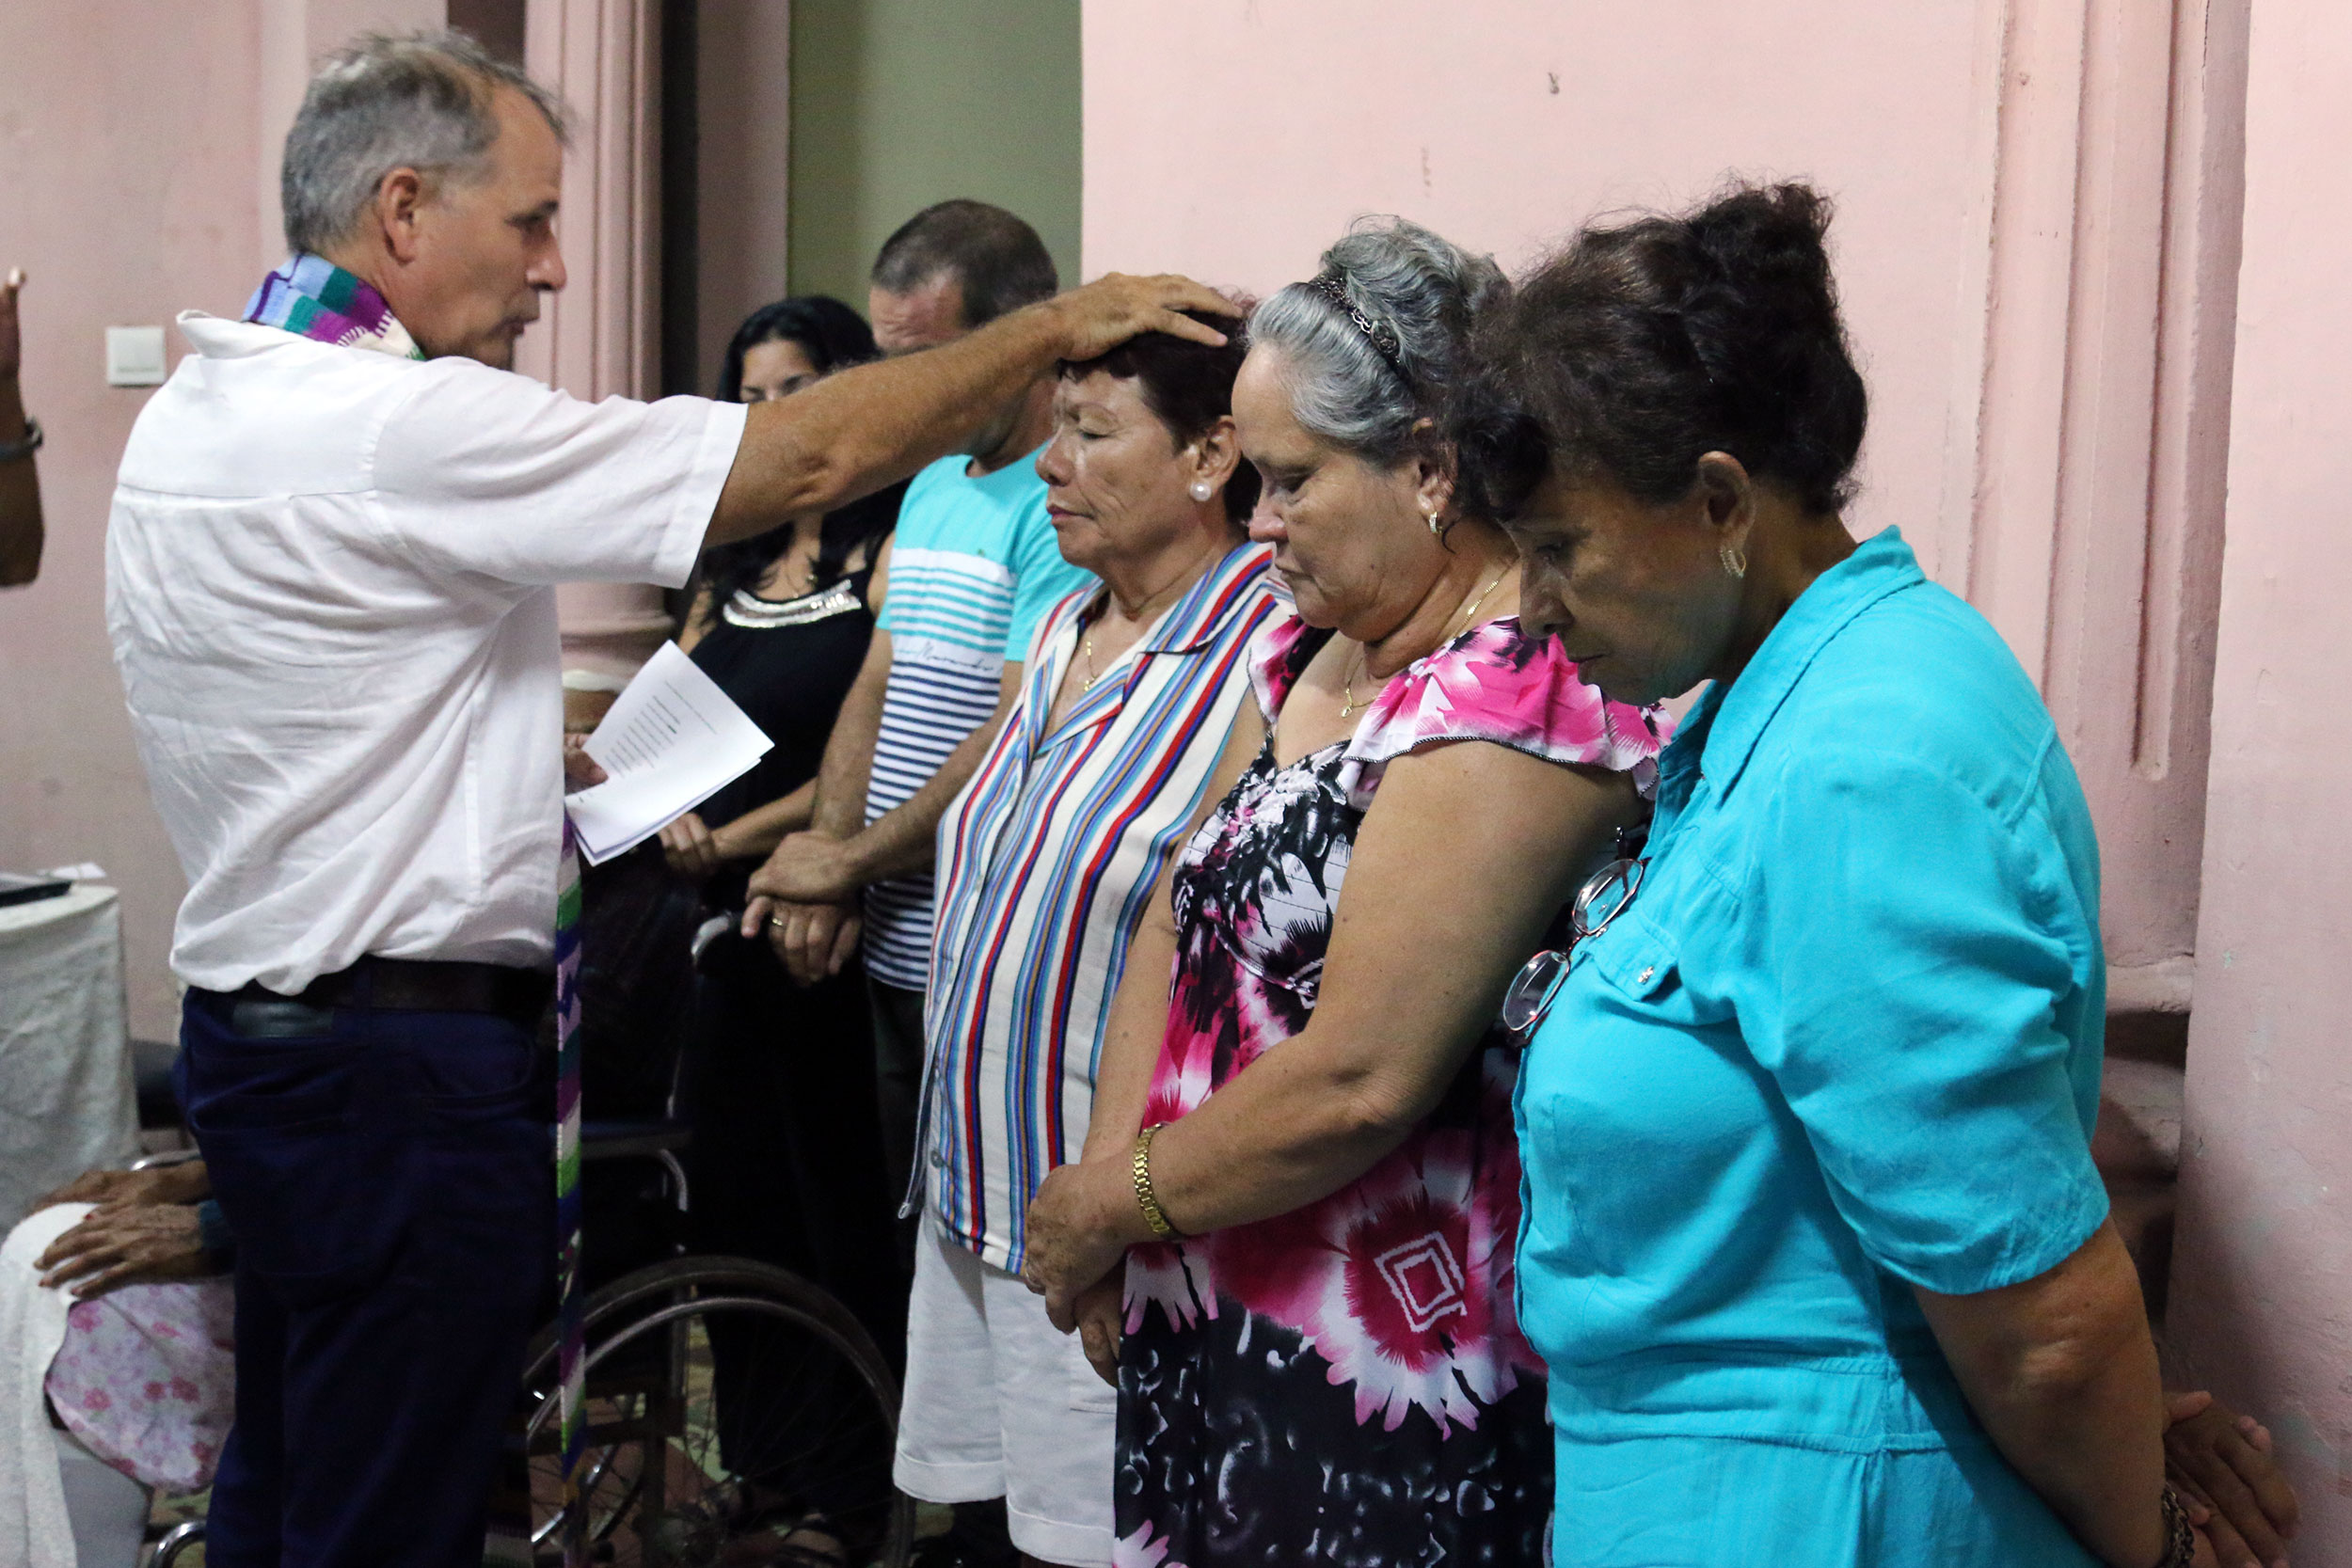 Ary Fernandez baptizes Xiomara Alonso as other new members of the Presbyterian Mission in Holguin look on.